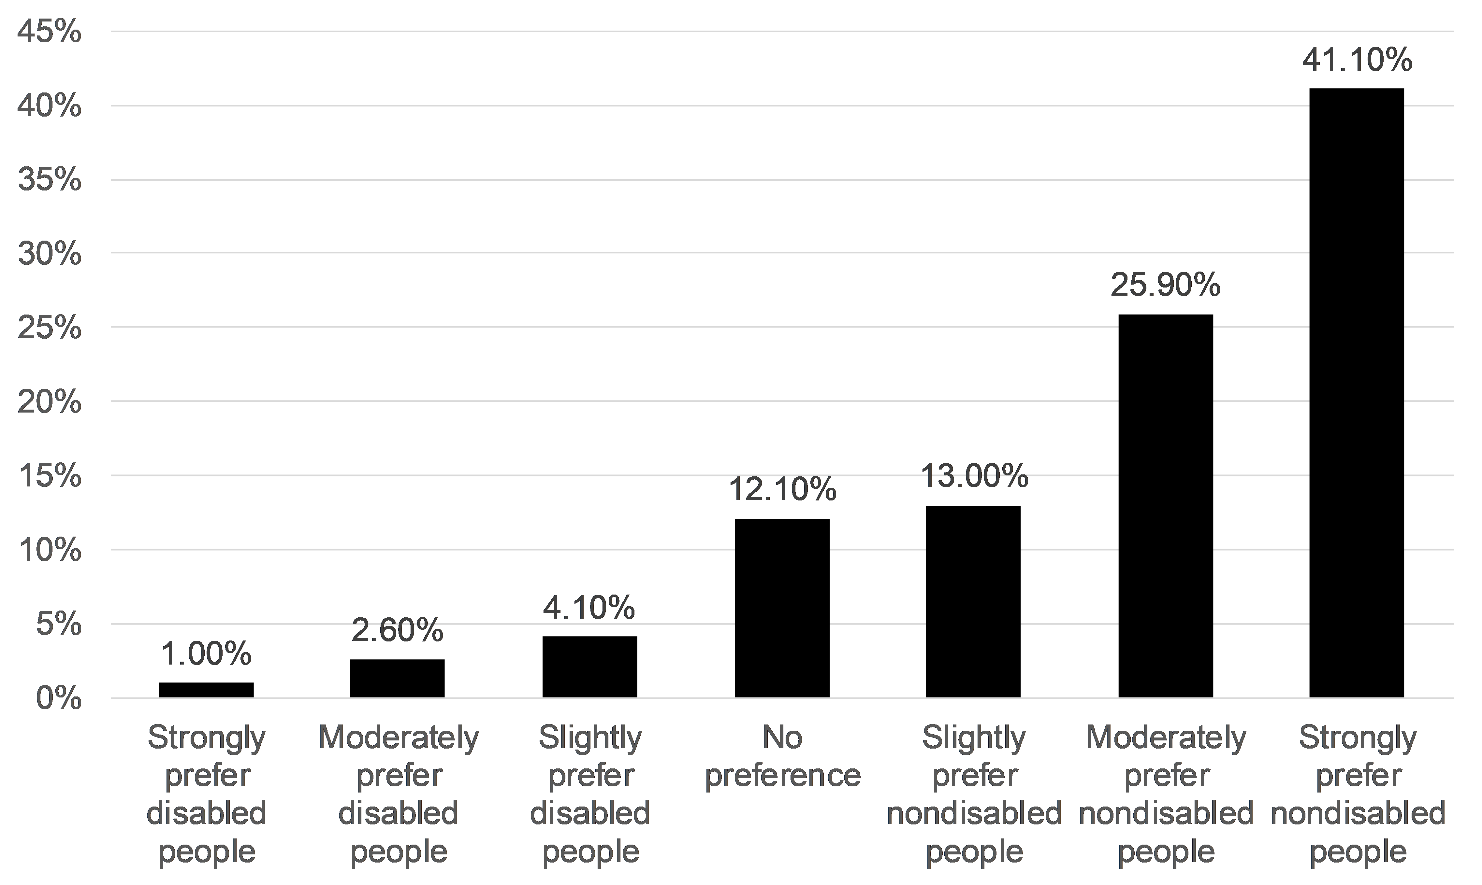 Figure 2. Distribution of participants' implicit preferences for